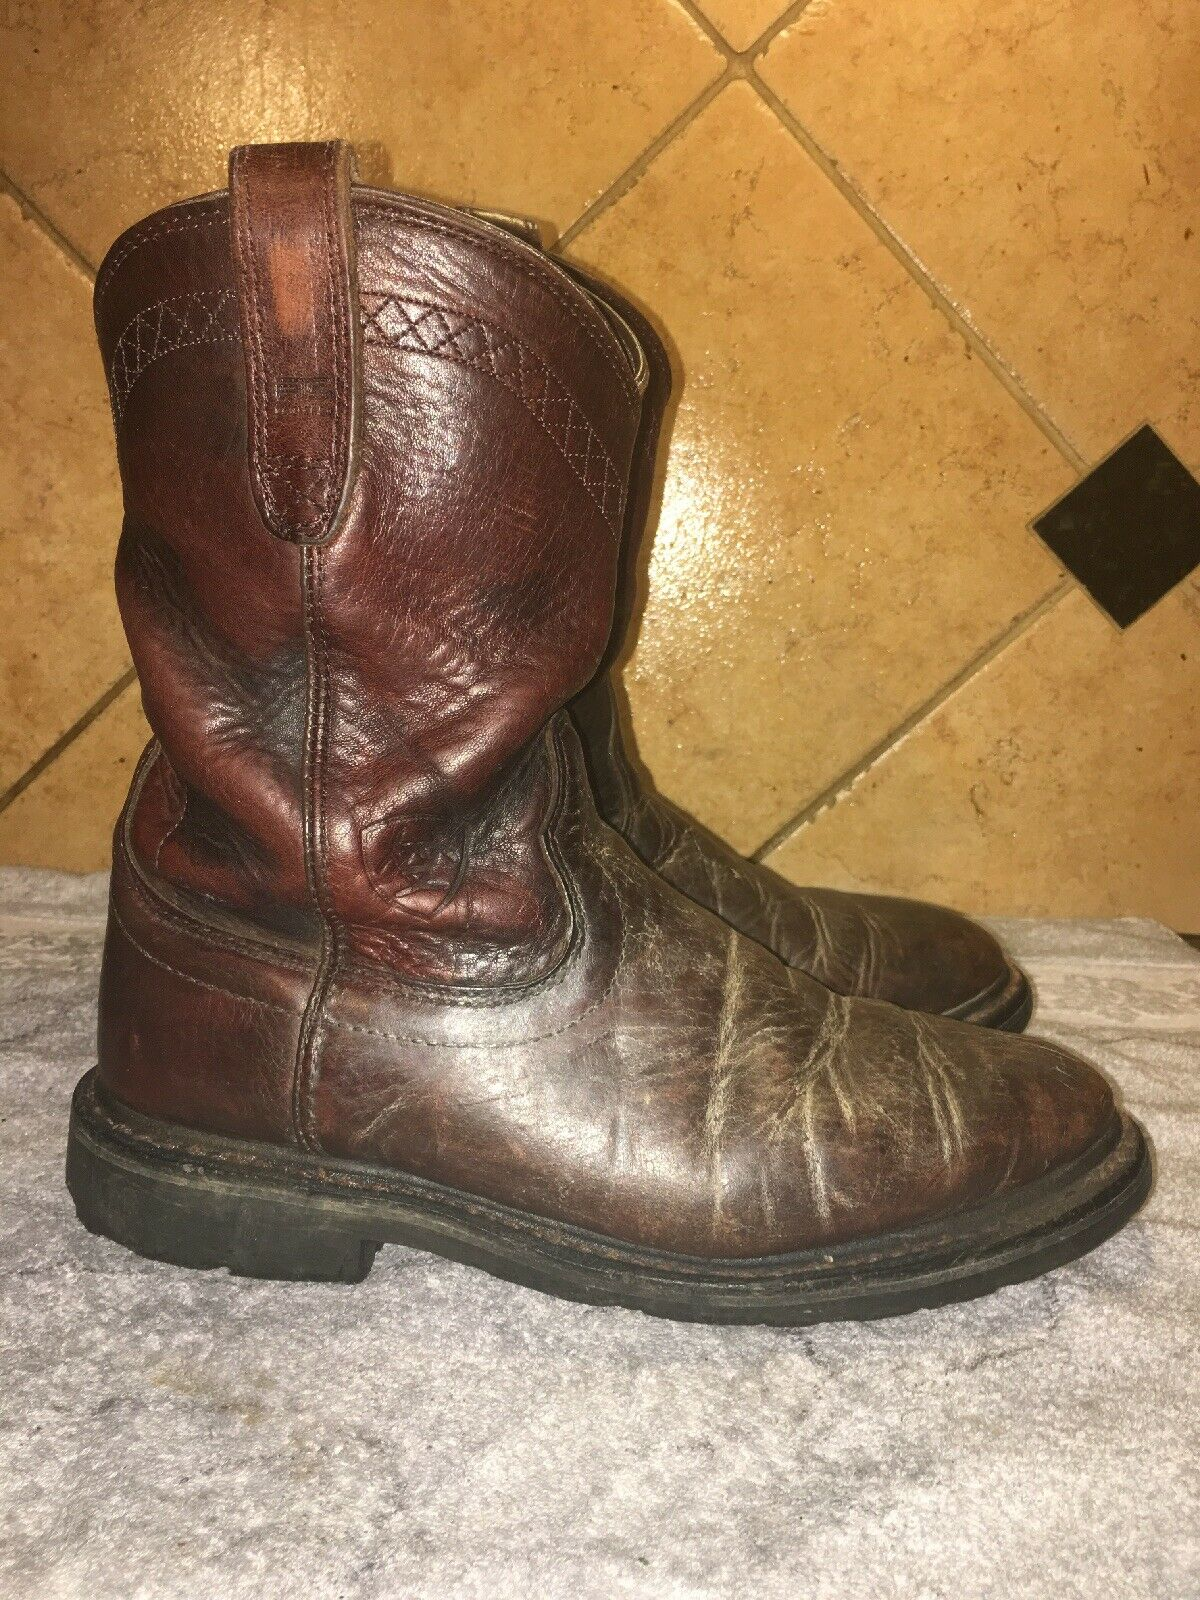 Ariat 10002429 Brown Leather Work Boots Sz 8.5 D